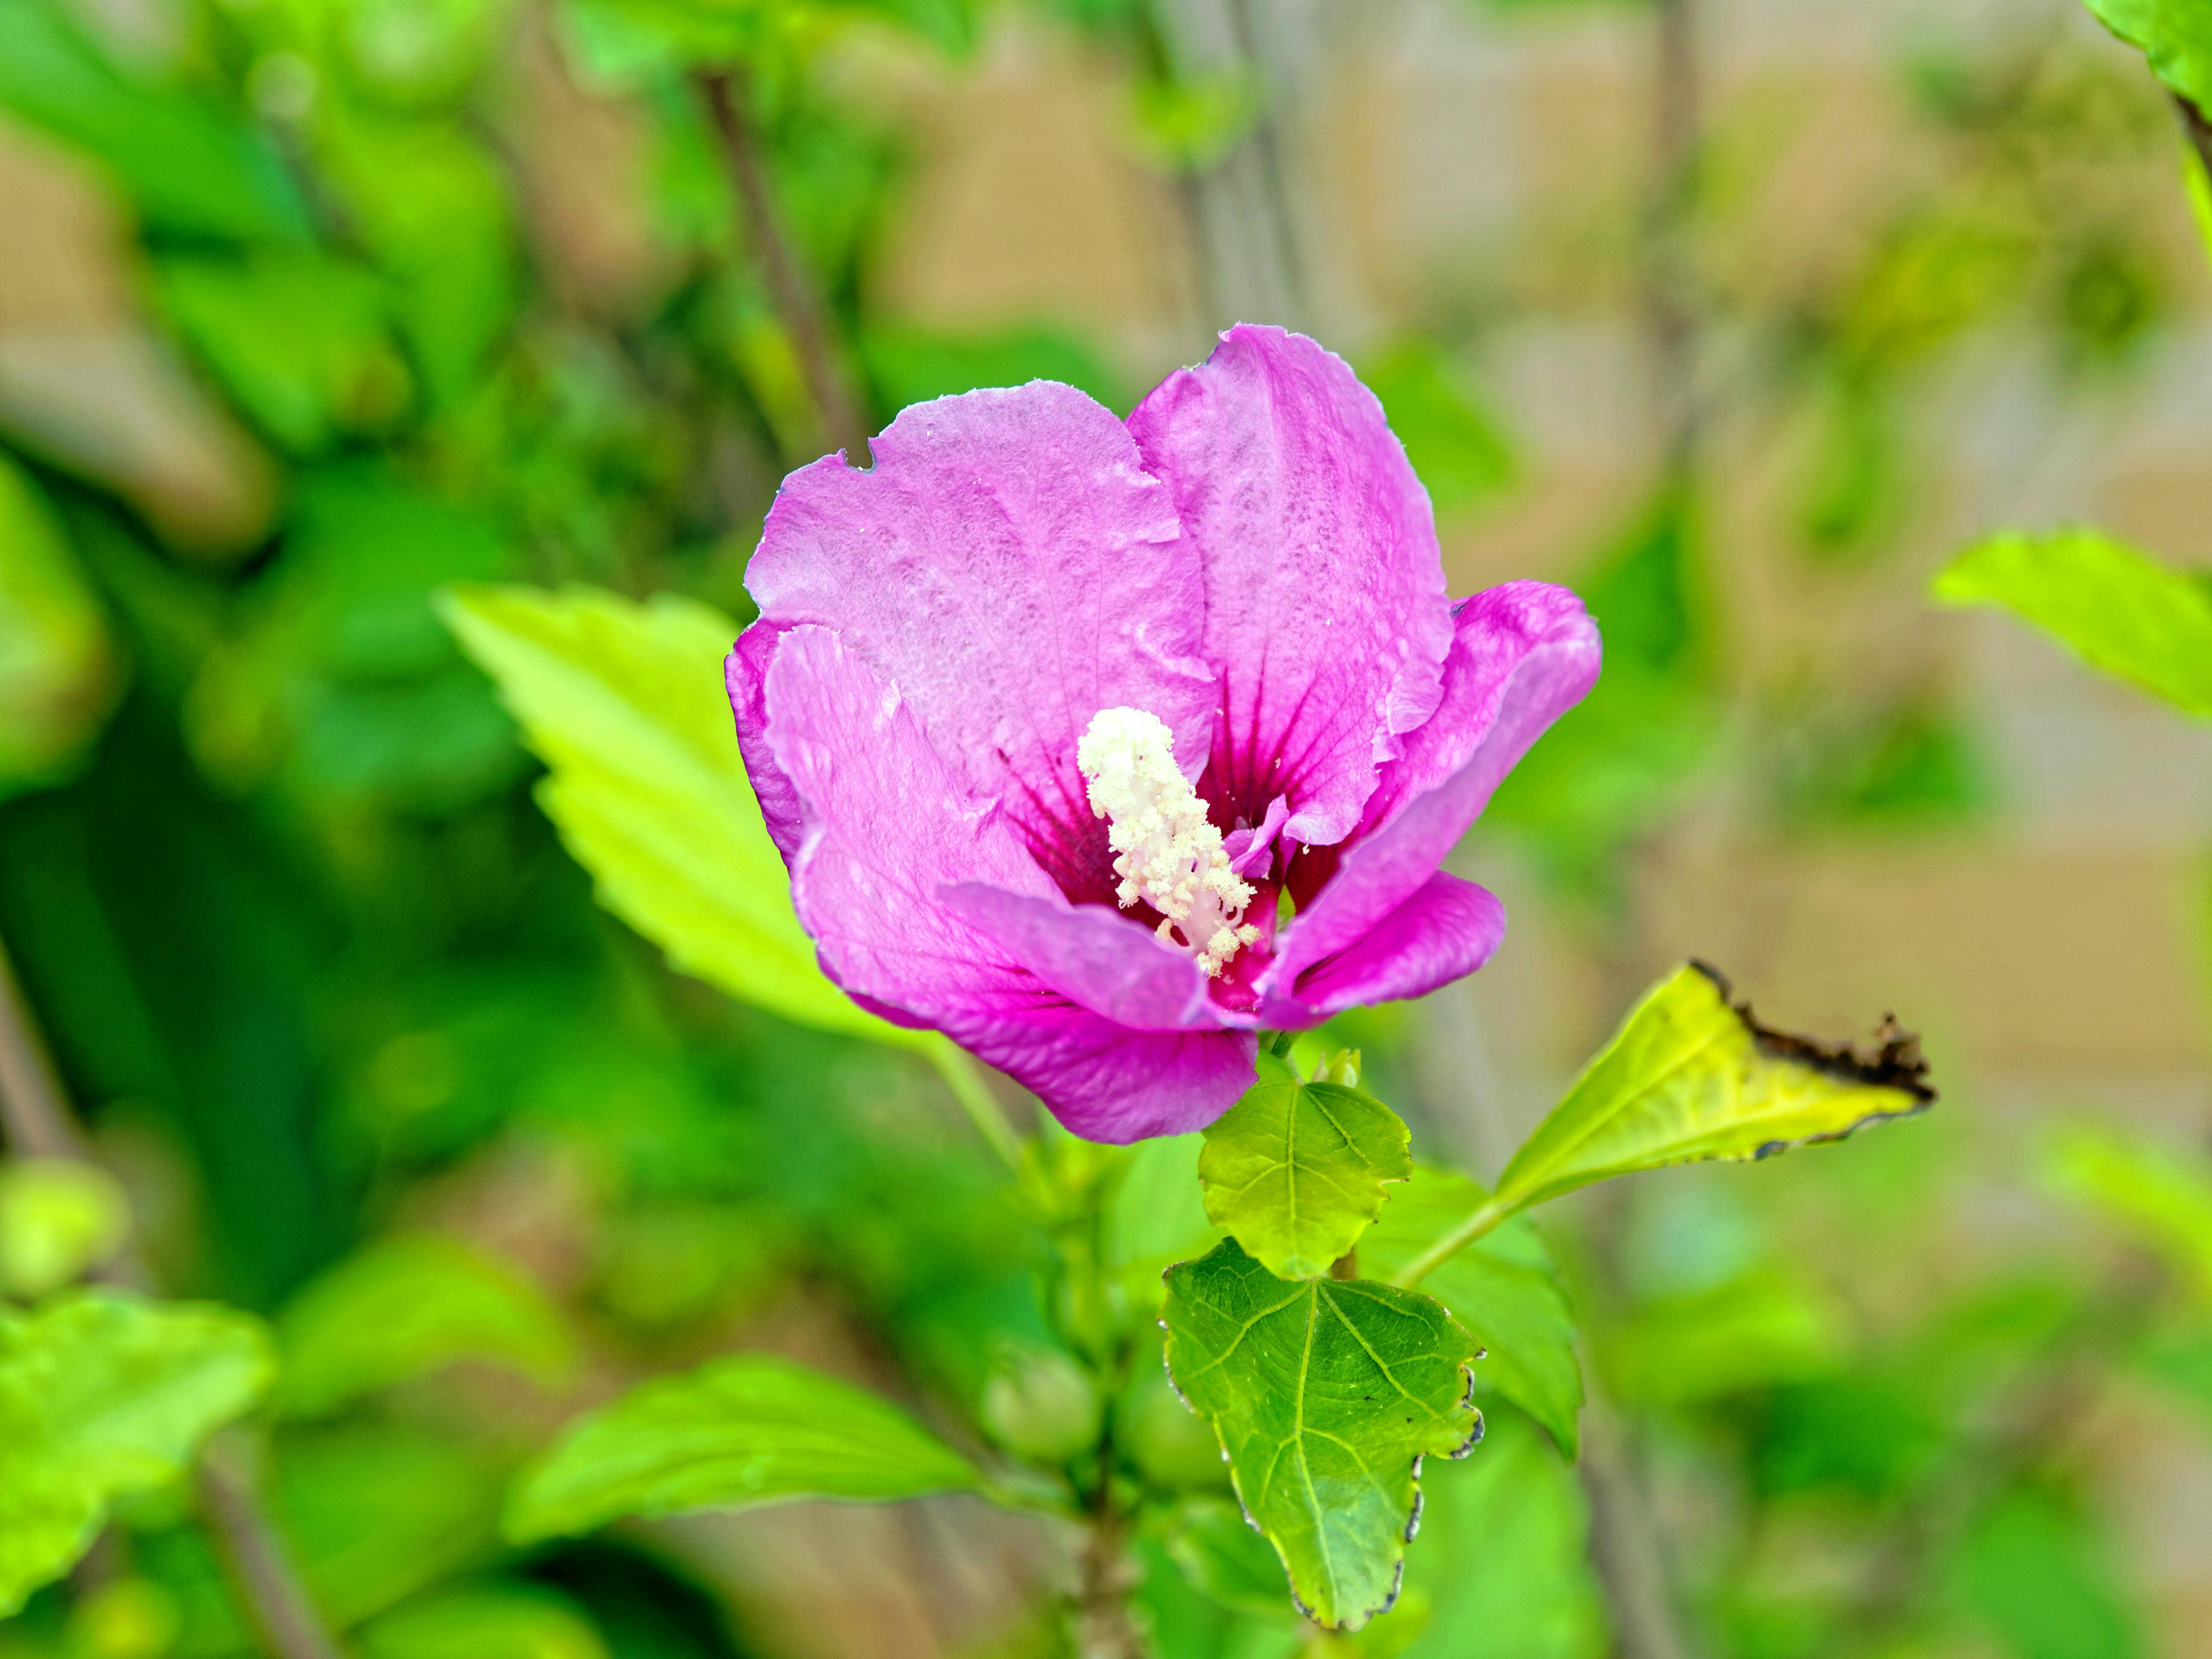 This should be Hibiscus-syriacus-2.jpeg.  Is it missing?